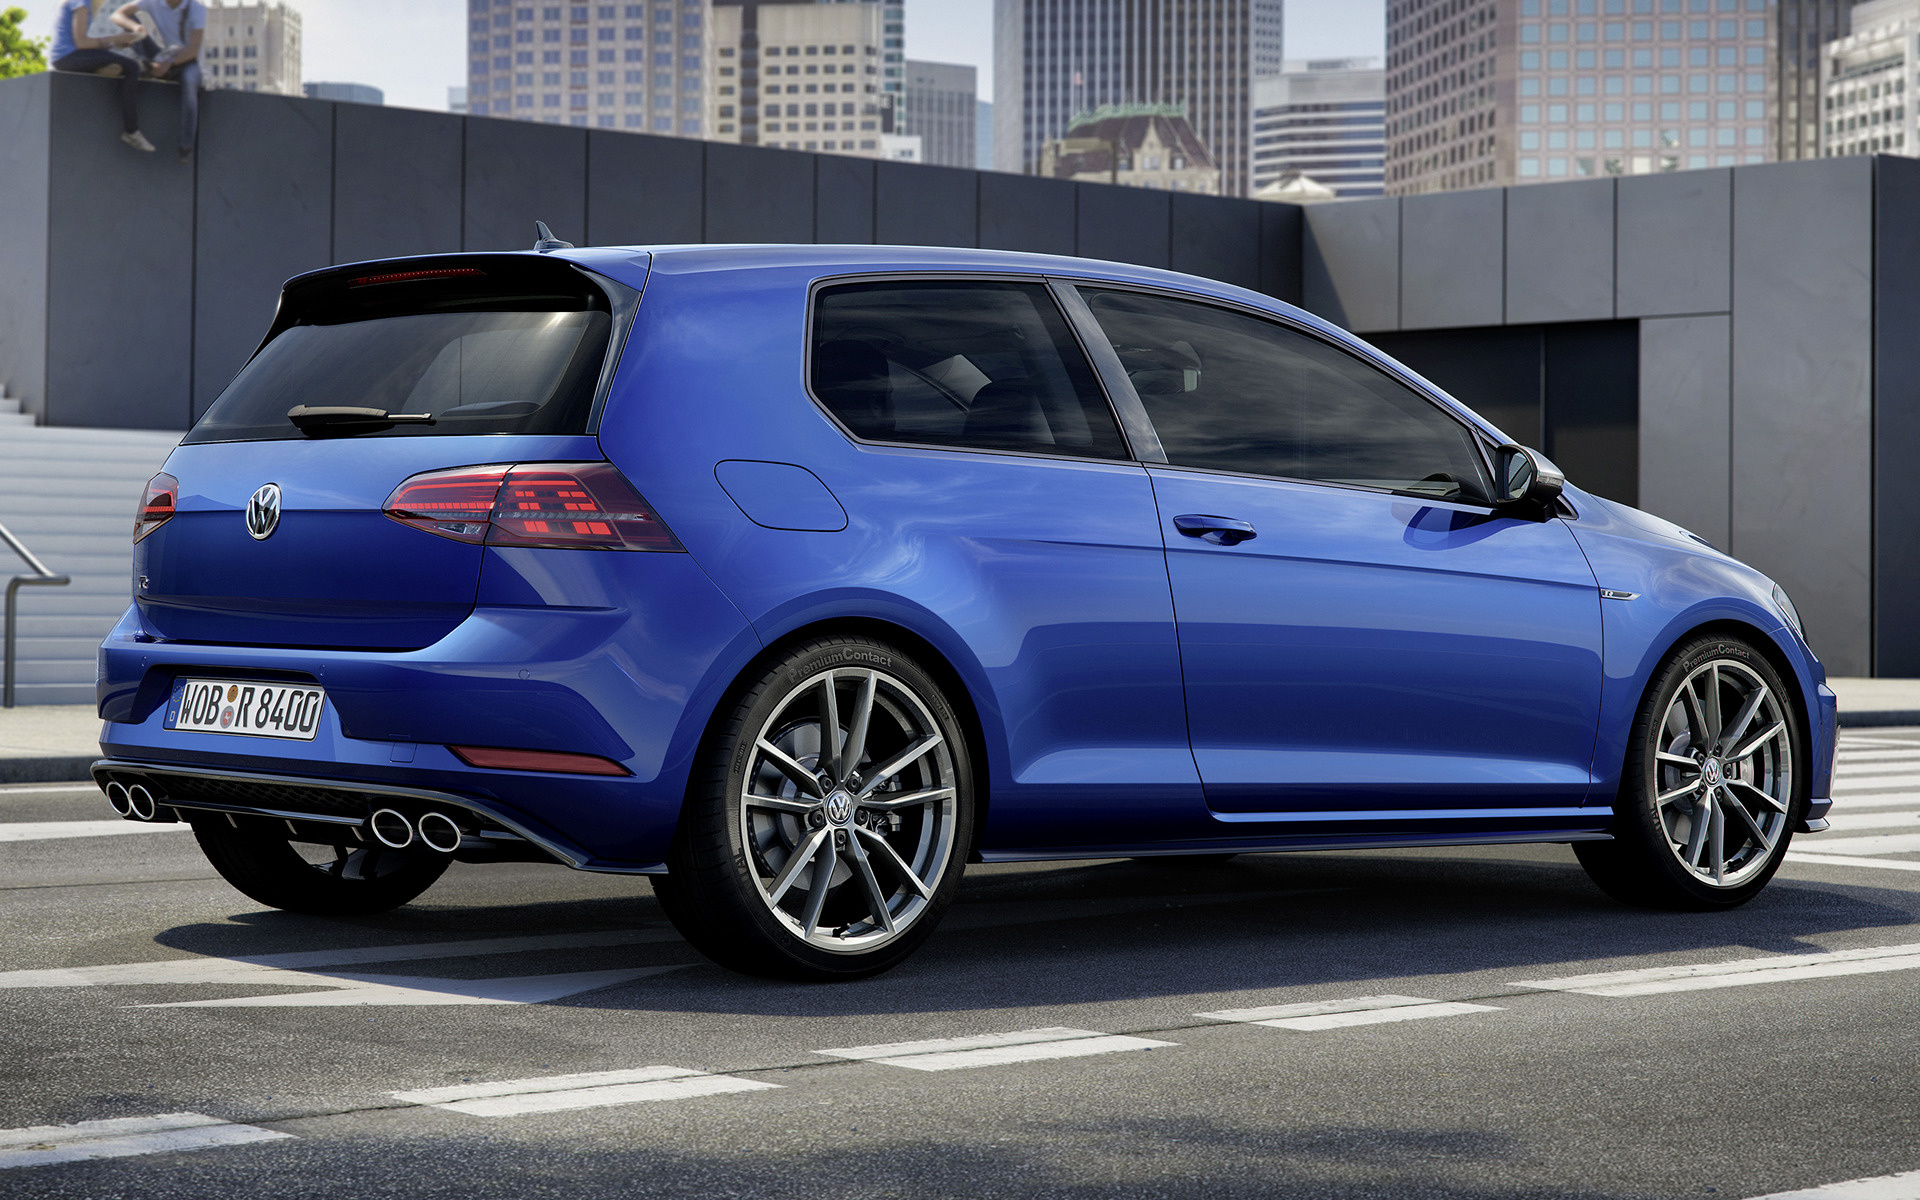 volkswagen golf r 3 door 2017 wallpapers and hd images car pixel. Black Bedroom Furniture Sets. Home Design Ideas